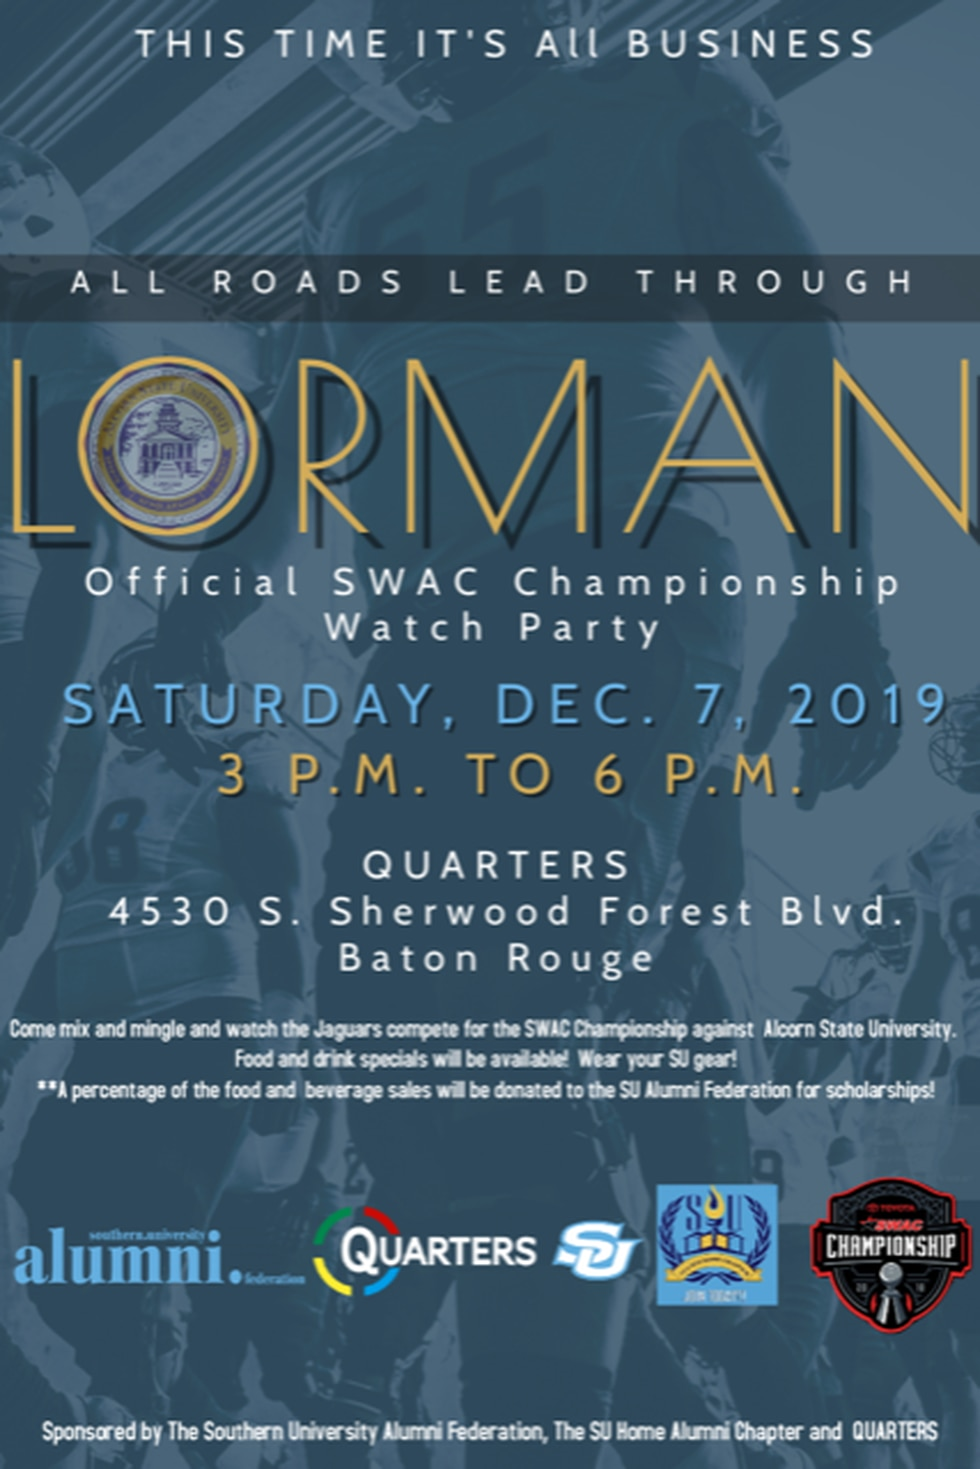 The SWAC Championship Watch Party will be held at Quarters, 4530 S. Sherwood Forest Boulevard.